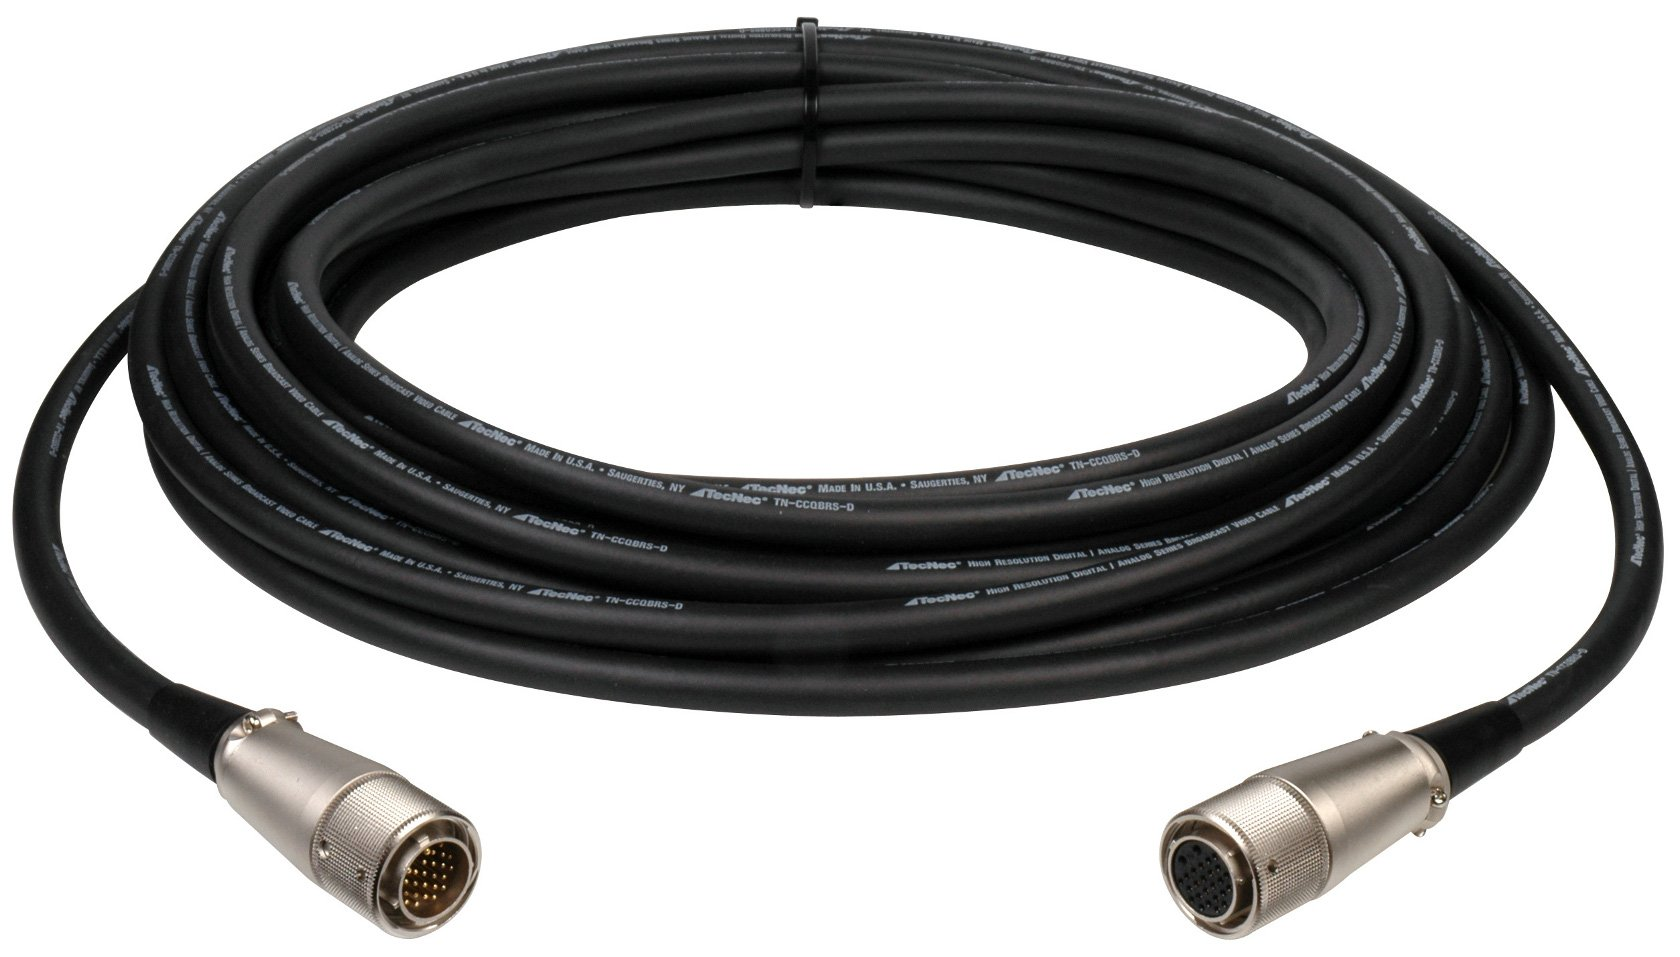 82 ft EIAJ 26-Pin Male to Female Sony Camera Control Cable